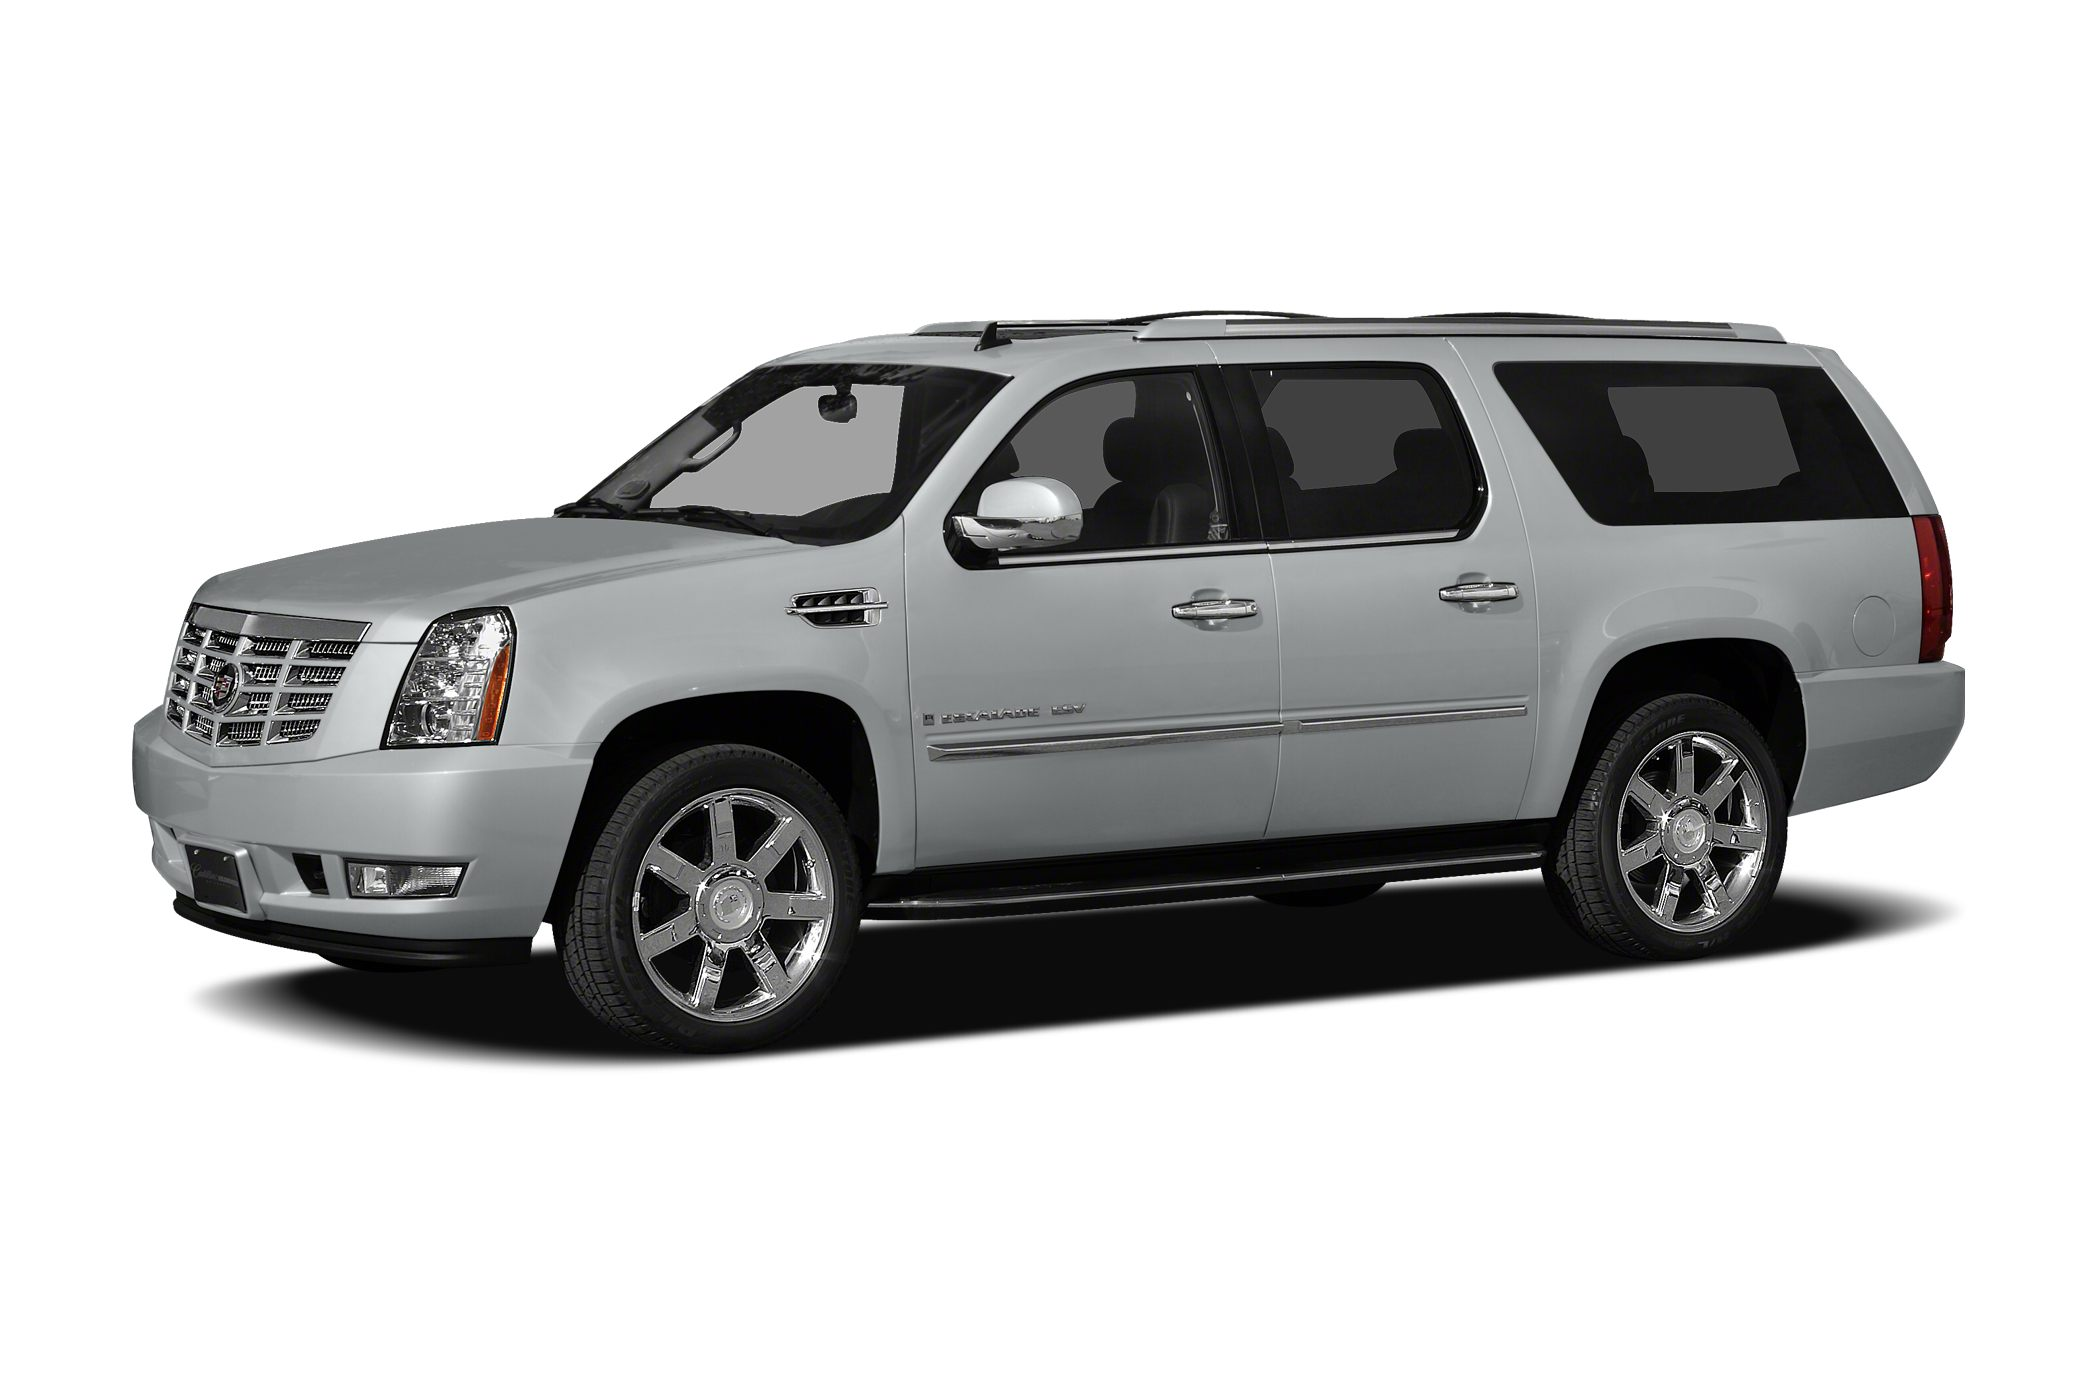 2011 Cadillac Escalade ESV Luxury SUV for sale in Phoenix for $0 with 37,291 miles